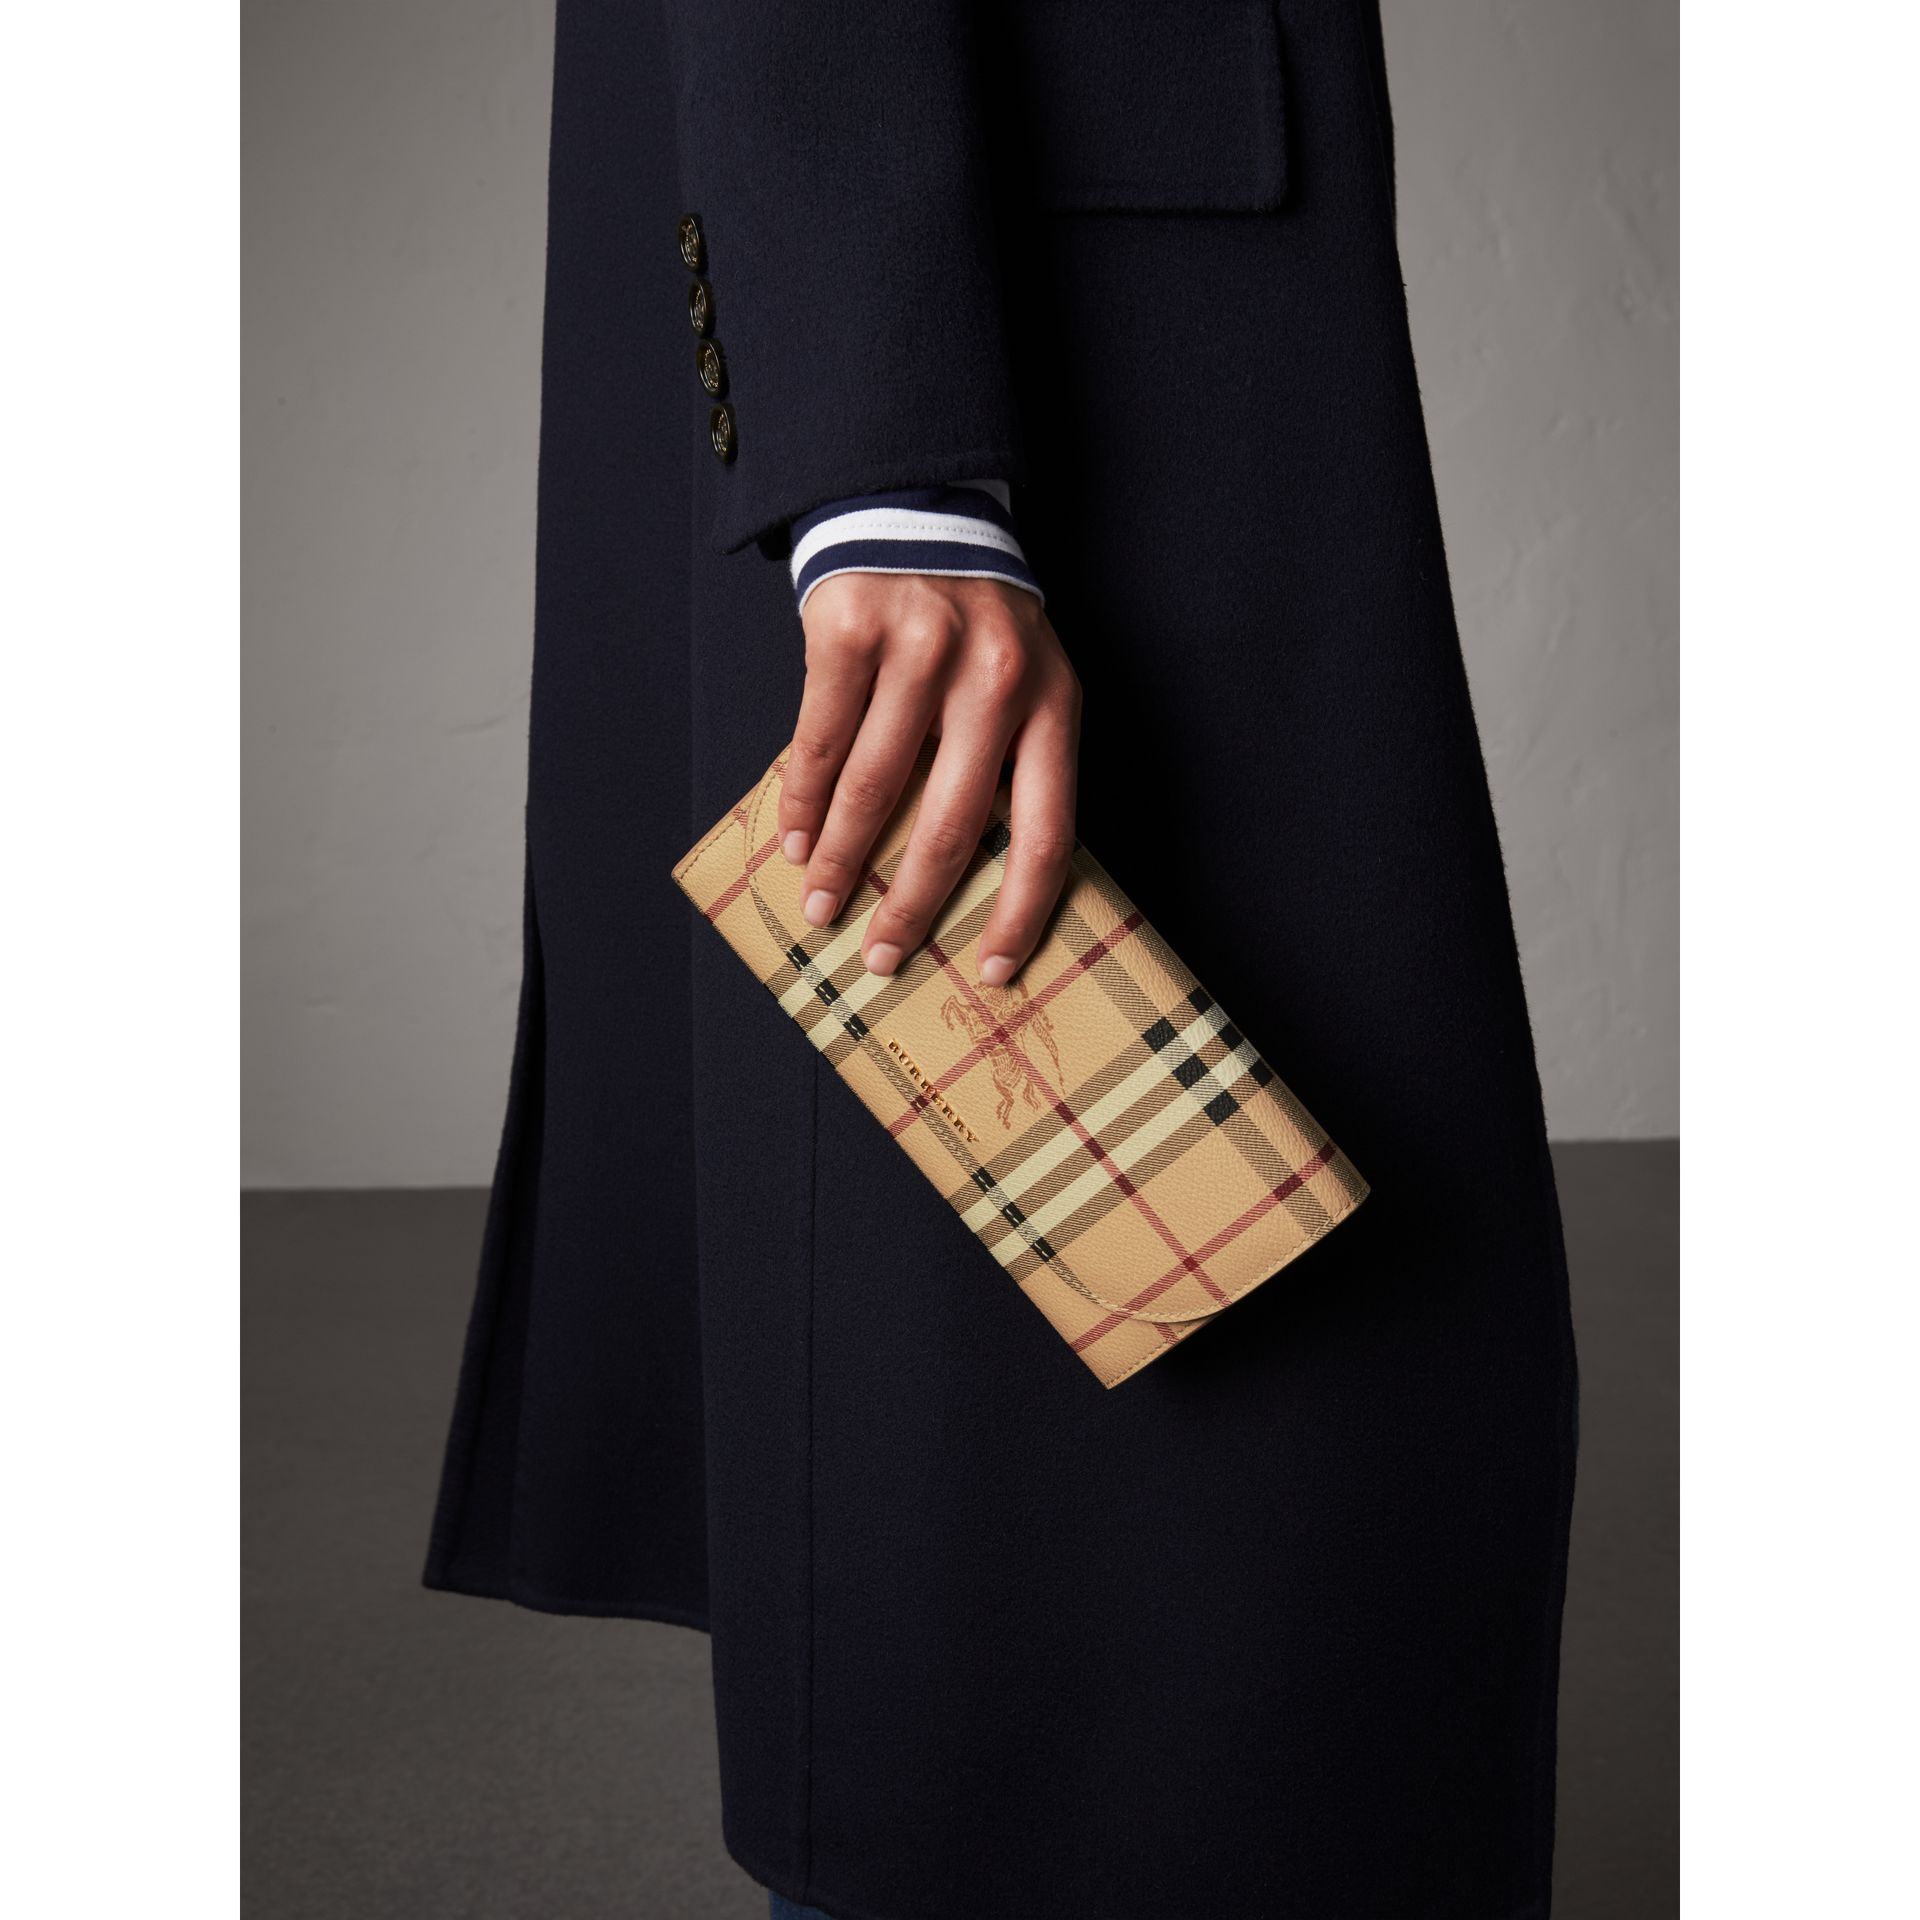 Leather Trim Haymarket Check Wallet with Chain in Mid Camel - Women | Burberry Canada - gallery image 2